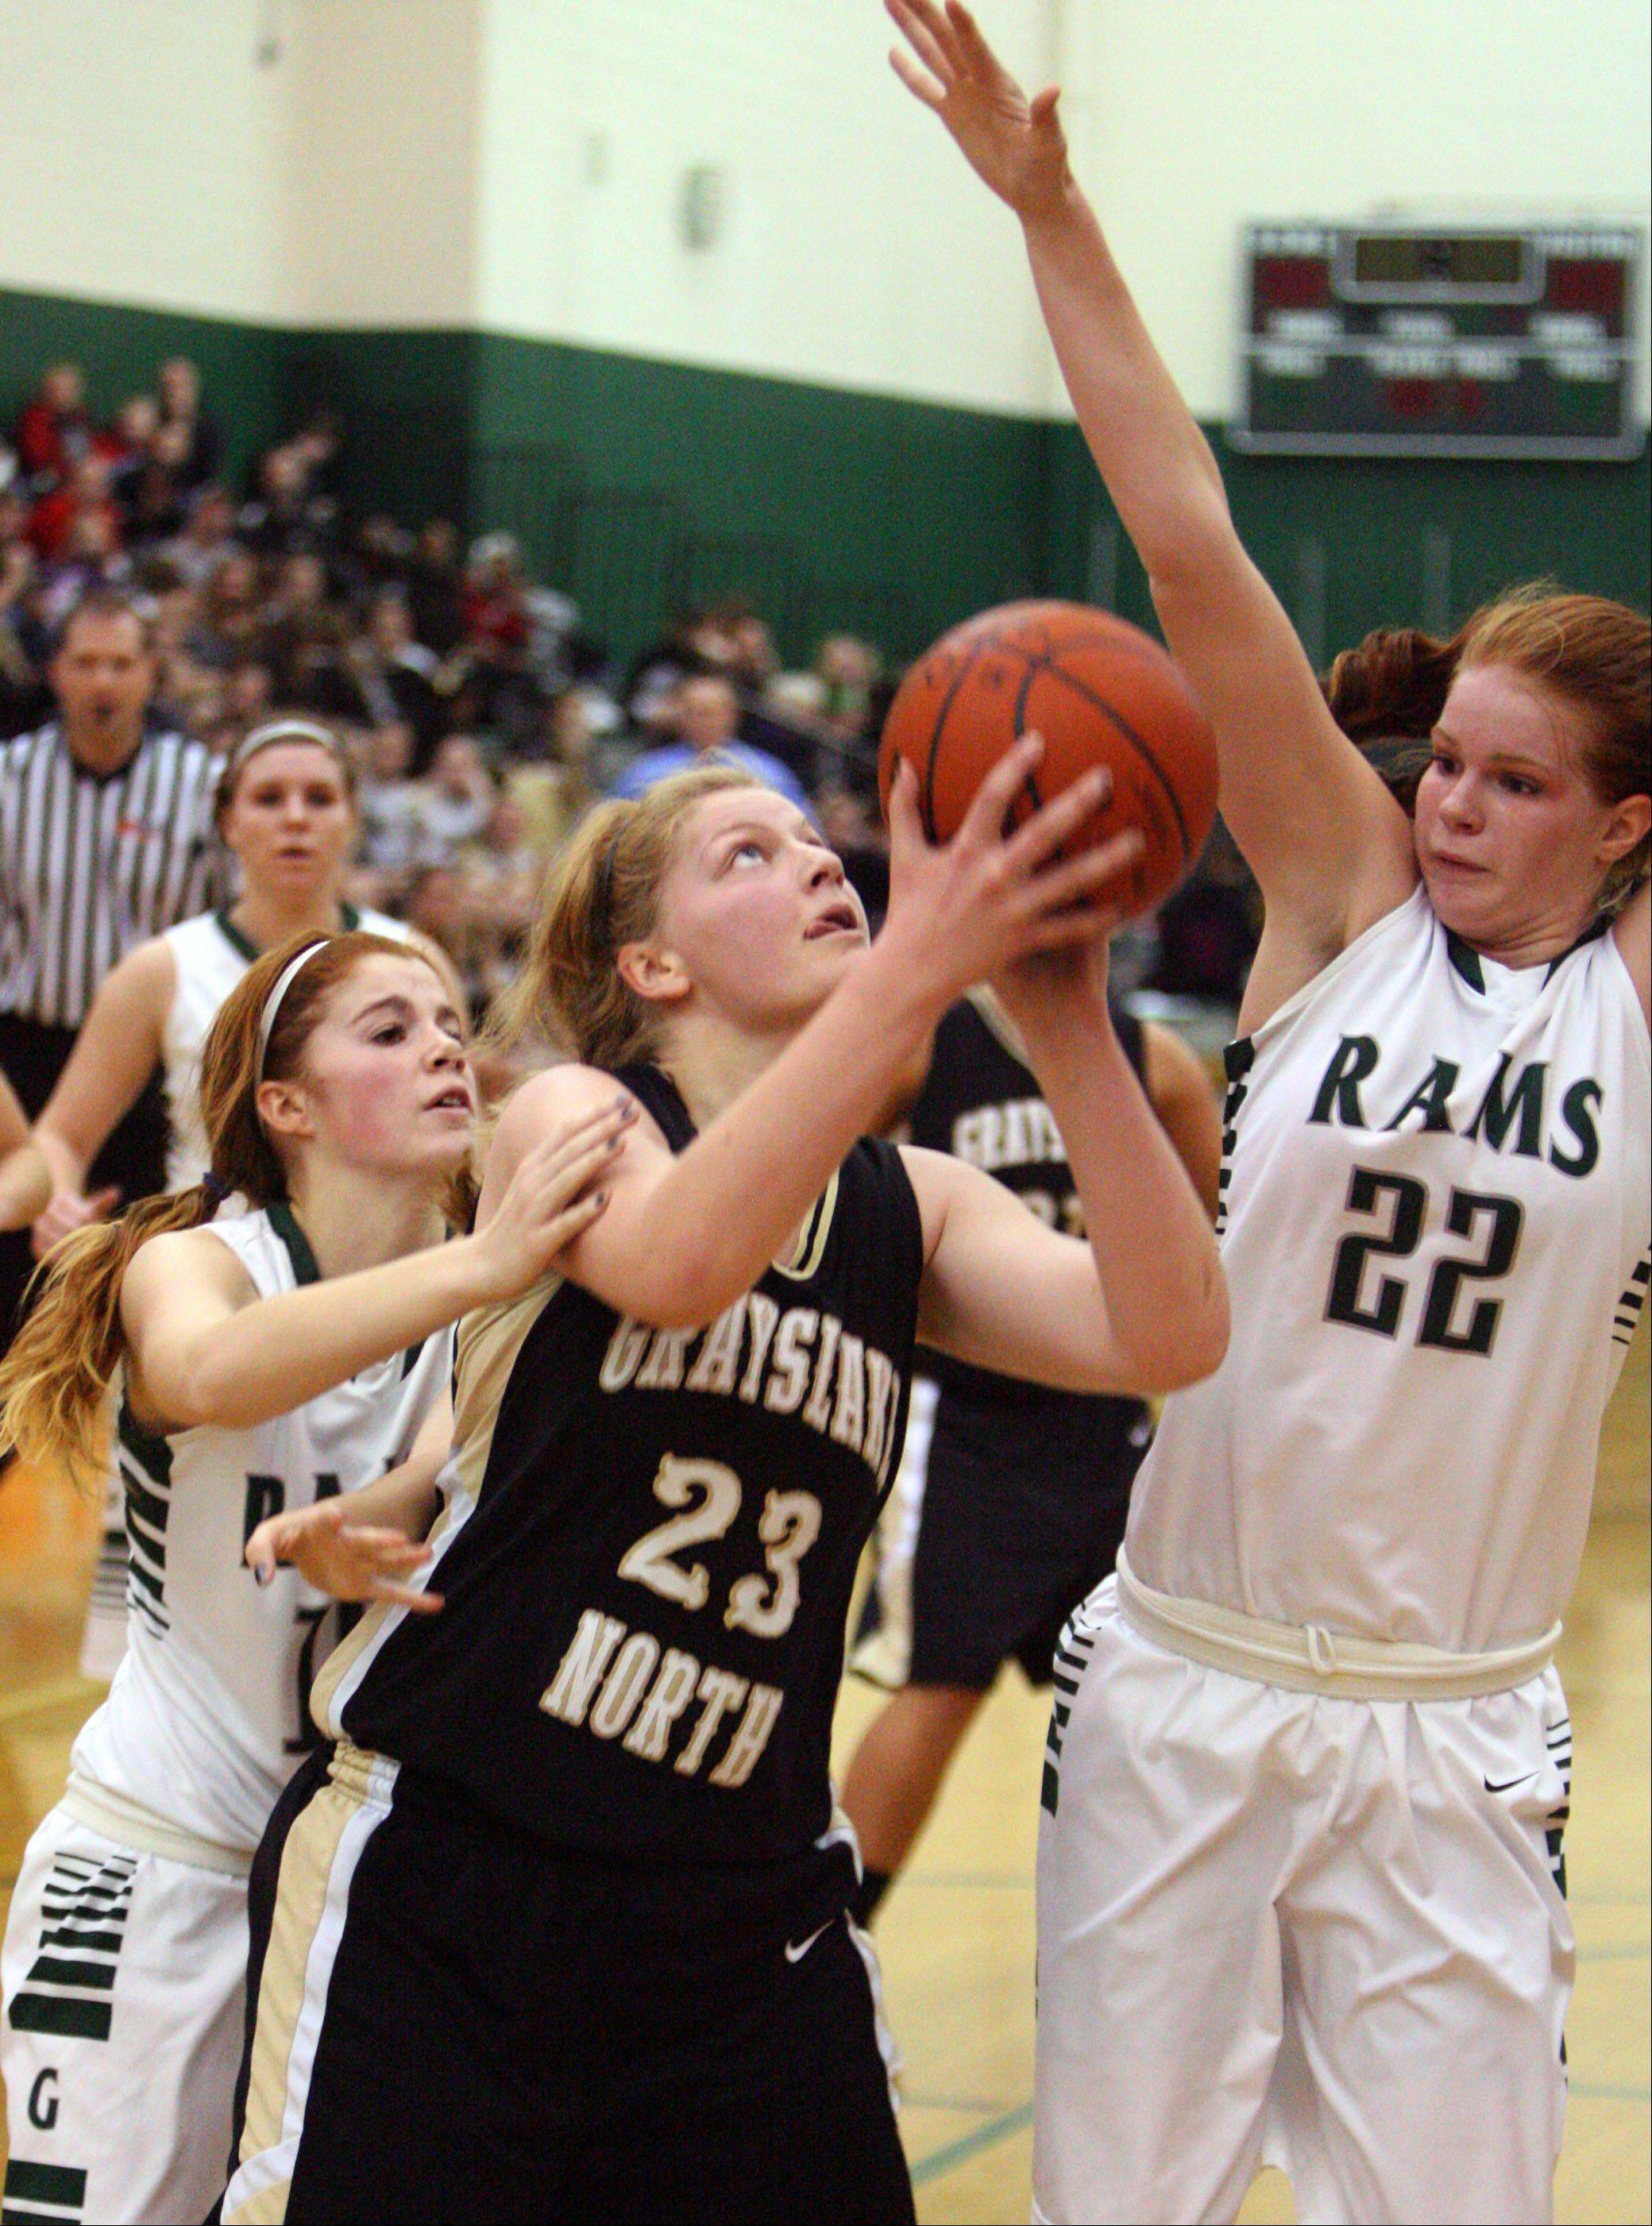 Grayslake North's Joanna Guhl, center, drives past Grayslake Central's Lauren Spaulding, left, and Morgan Dahlstrom on Tuesday night at Grayslake Central.